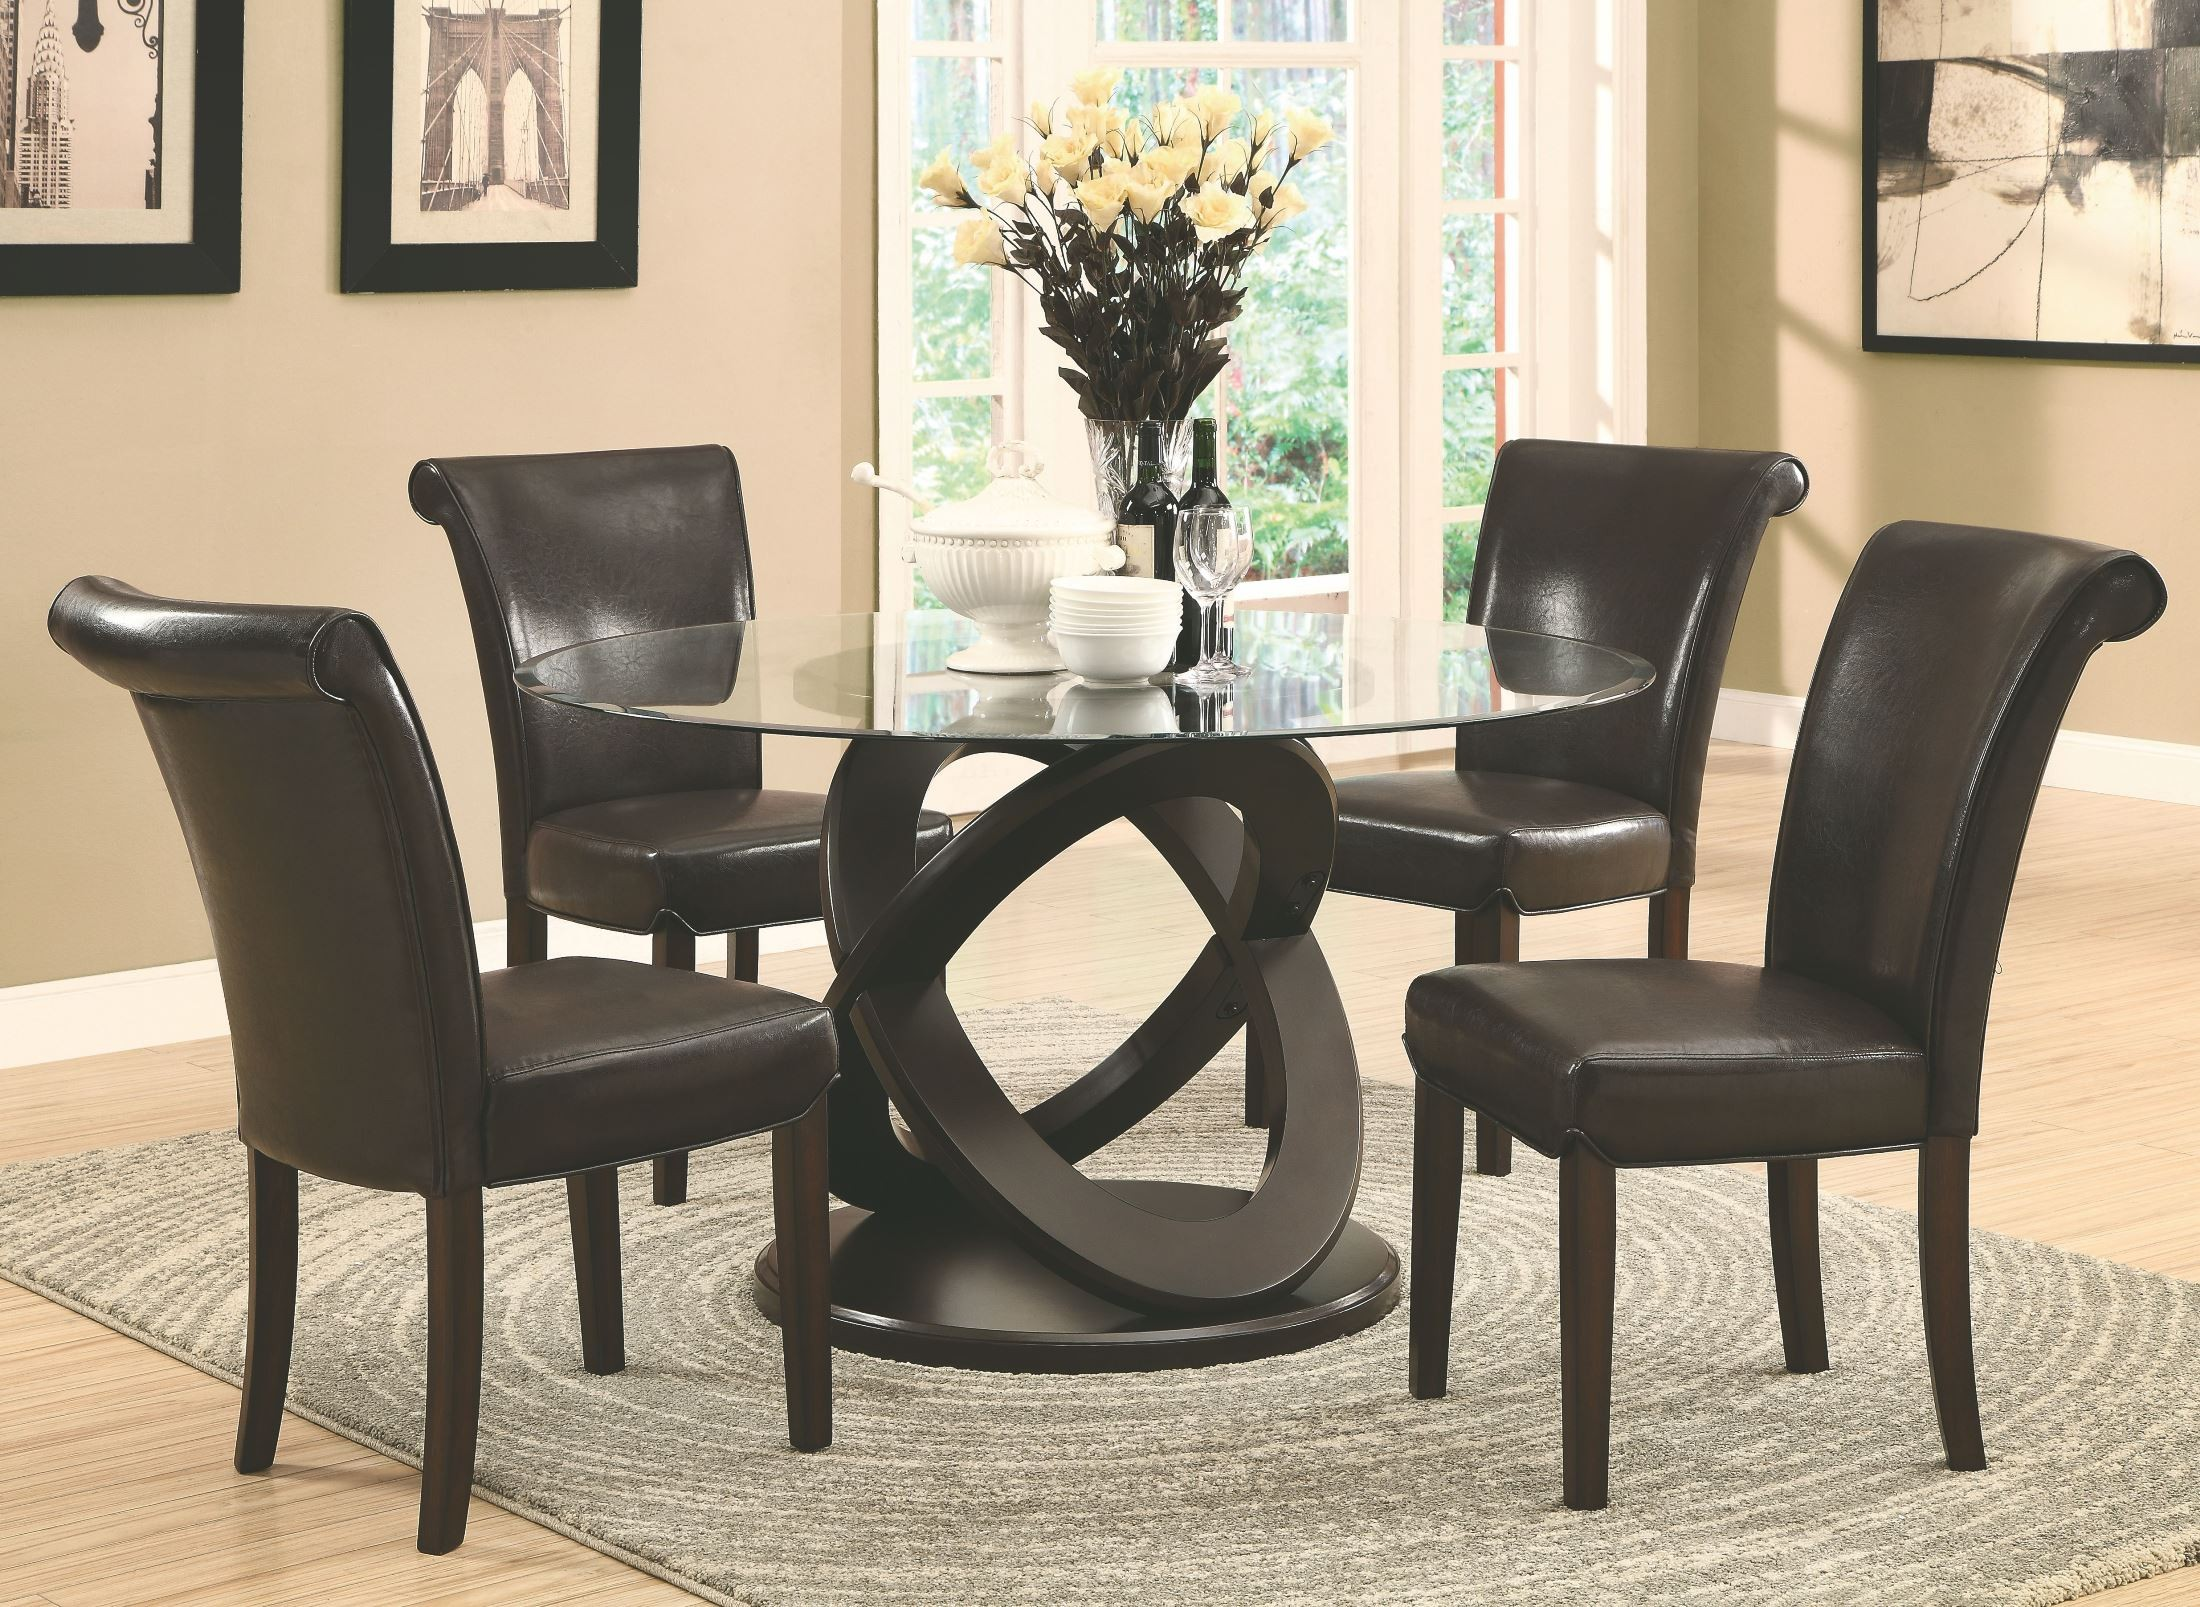 Dark Espresso 48 Diameter Tempered Glass Dining Table From Monarch 174